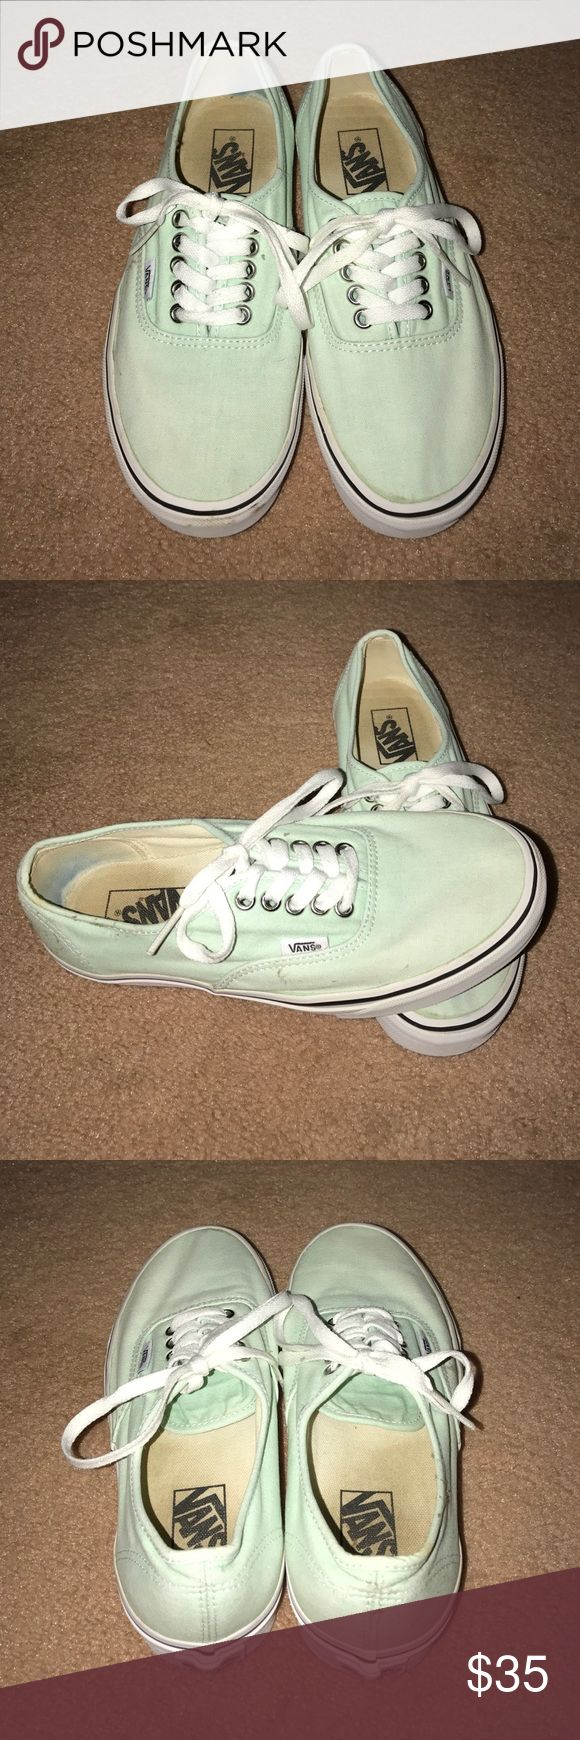 Mint Green Vans Worn a couple times and have been washed, but still in great condition. No damages. No trades please! Vans Shoes Sneakers